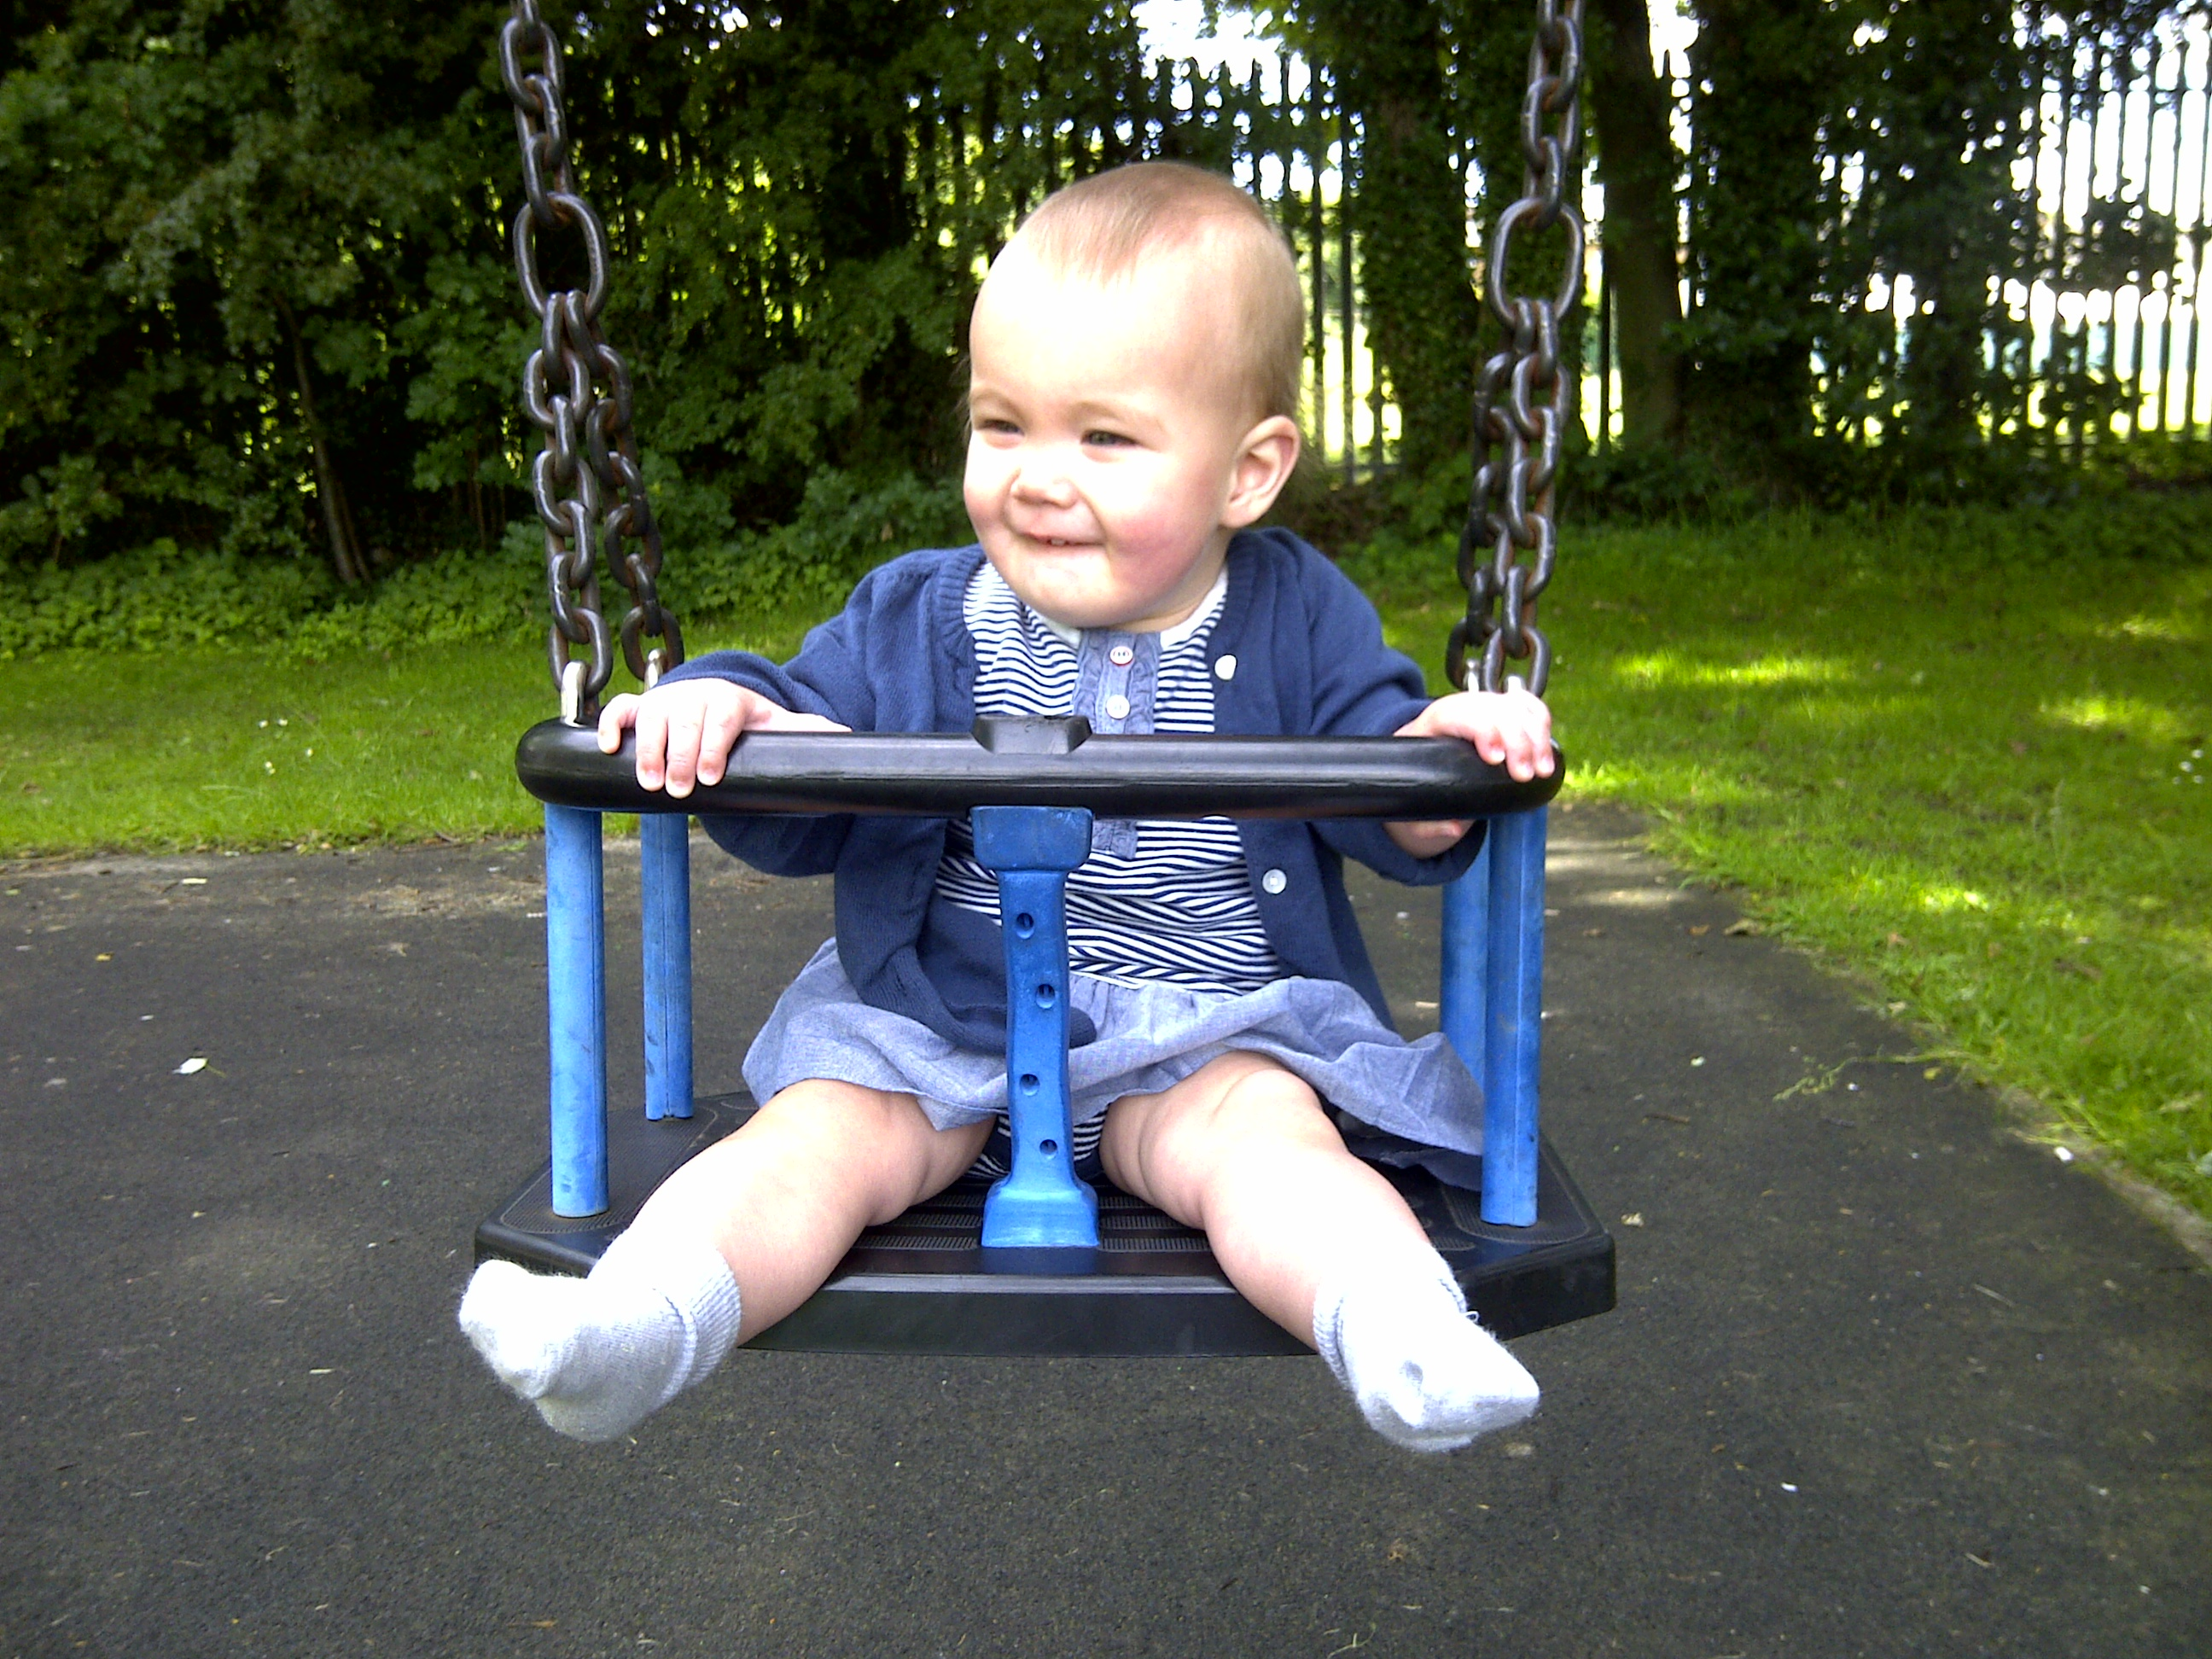 Boo and the colour coordinated swing!